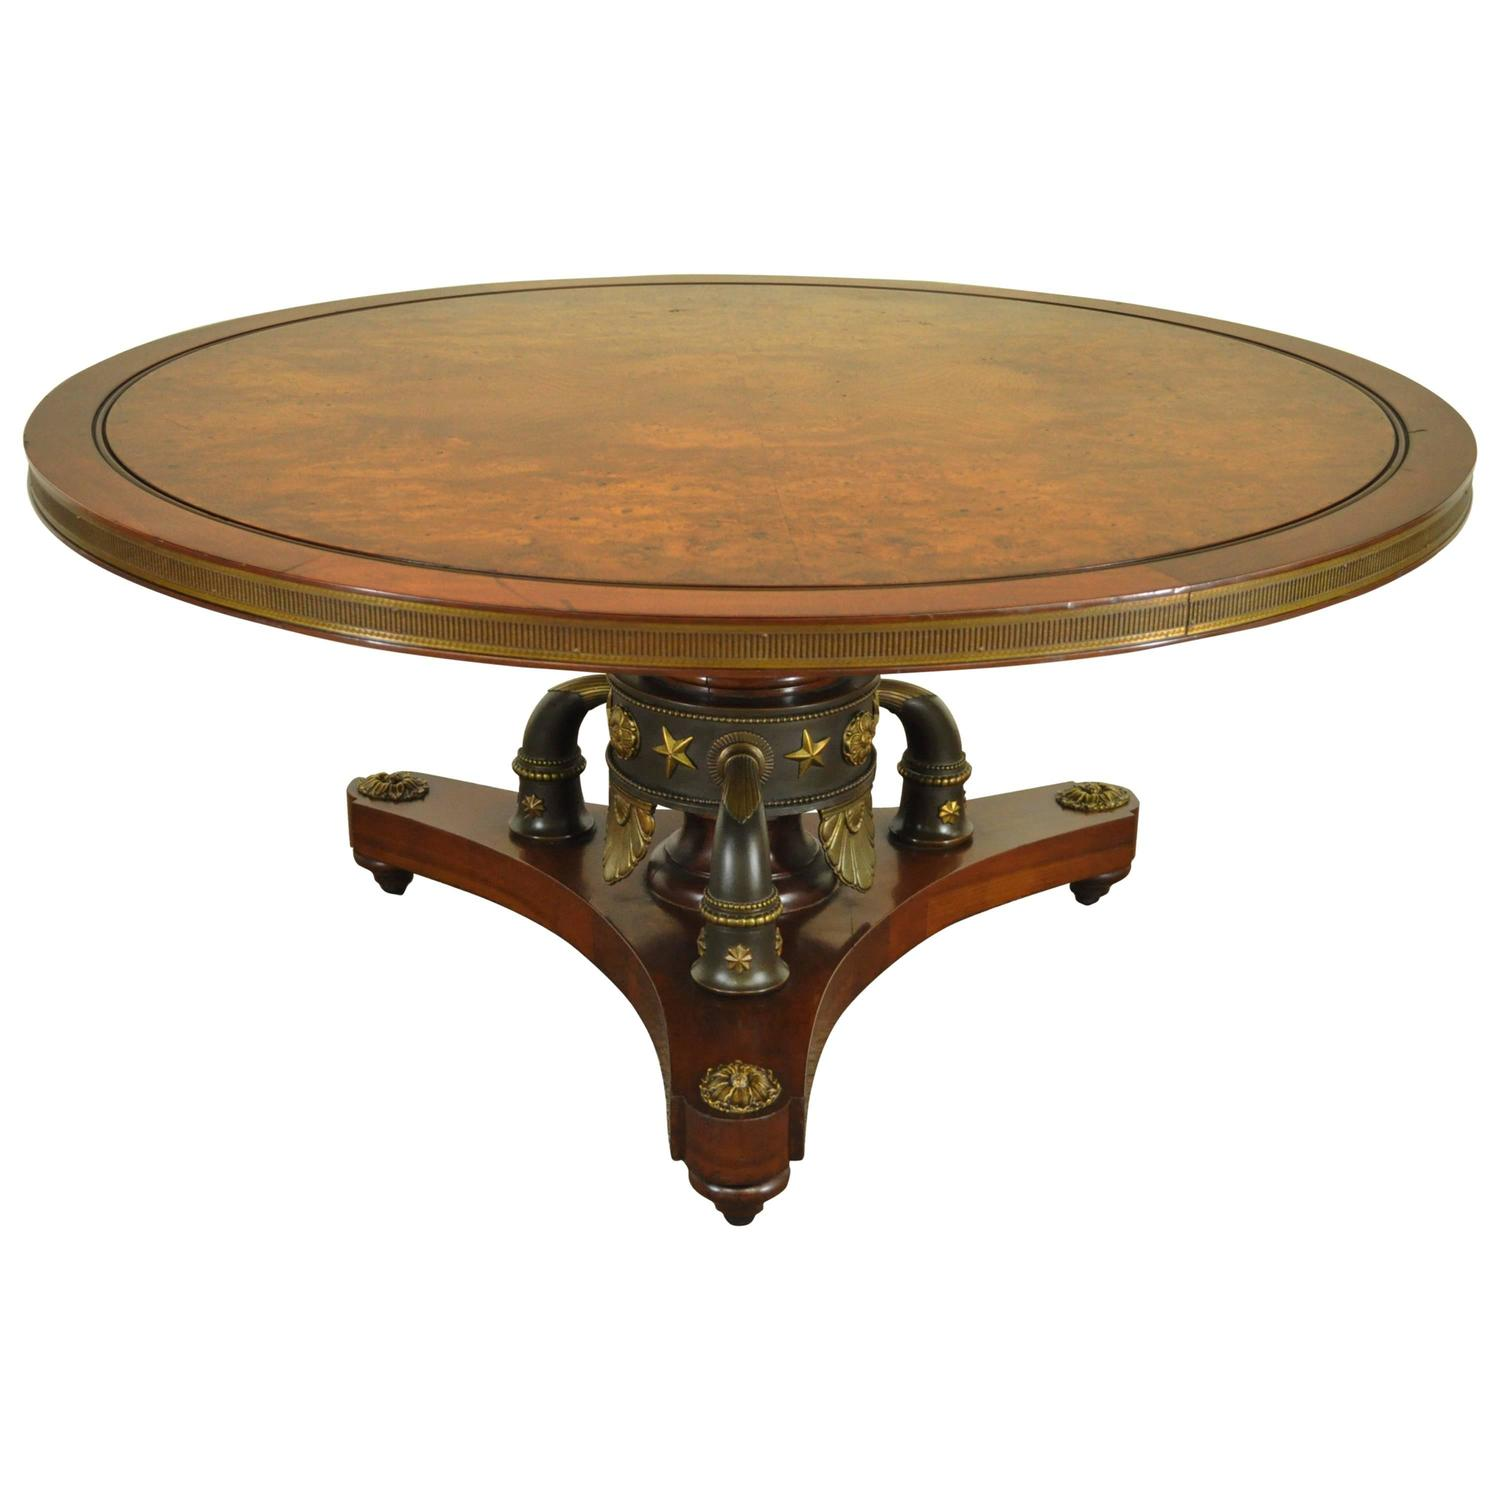 Say Coffee Table In French: Custom French Neoclassical Or Empire Style Cherry And Burl